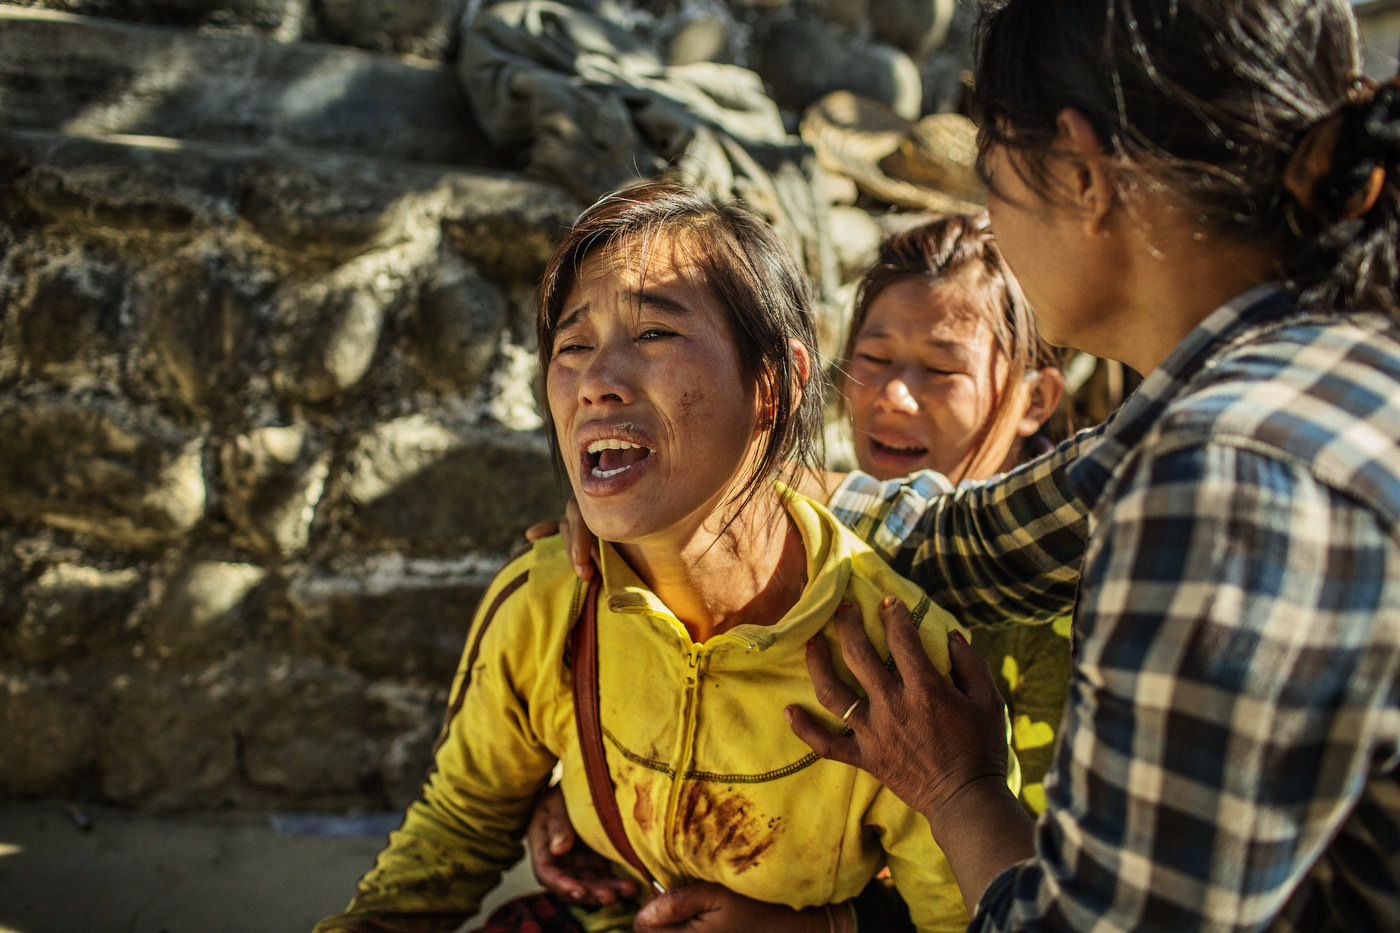 The wife of deceased Maji Tu Ja, 40, mourns outside the Hospital in Laiza, Kachin State in northern Myanmar.     Maji Tu Ja (Maji is the family name) was a farmer and village militiaman who was killed by a Burmese Army mortar grenade whilst repairing his tractor in a field. Three other civilians were wounded in the same mortar attack - two of them seriously.